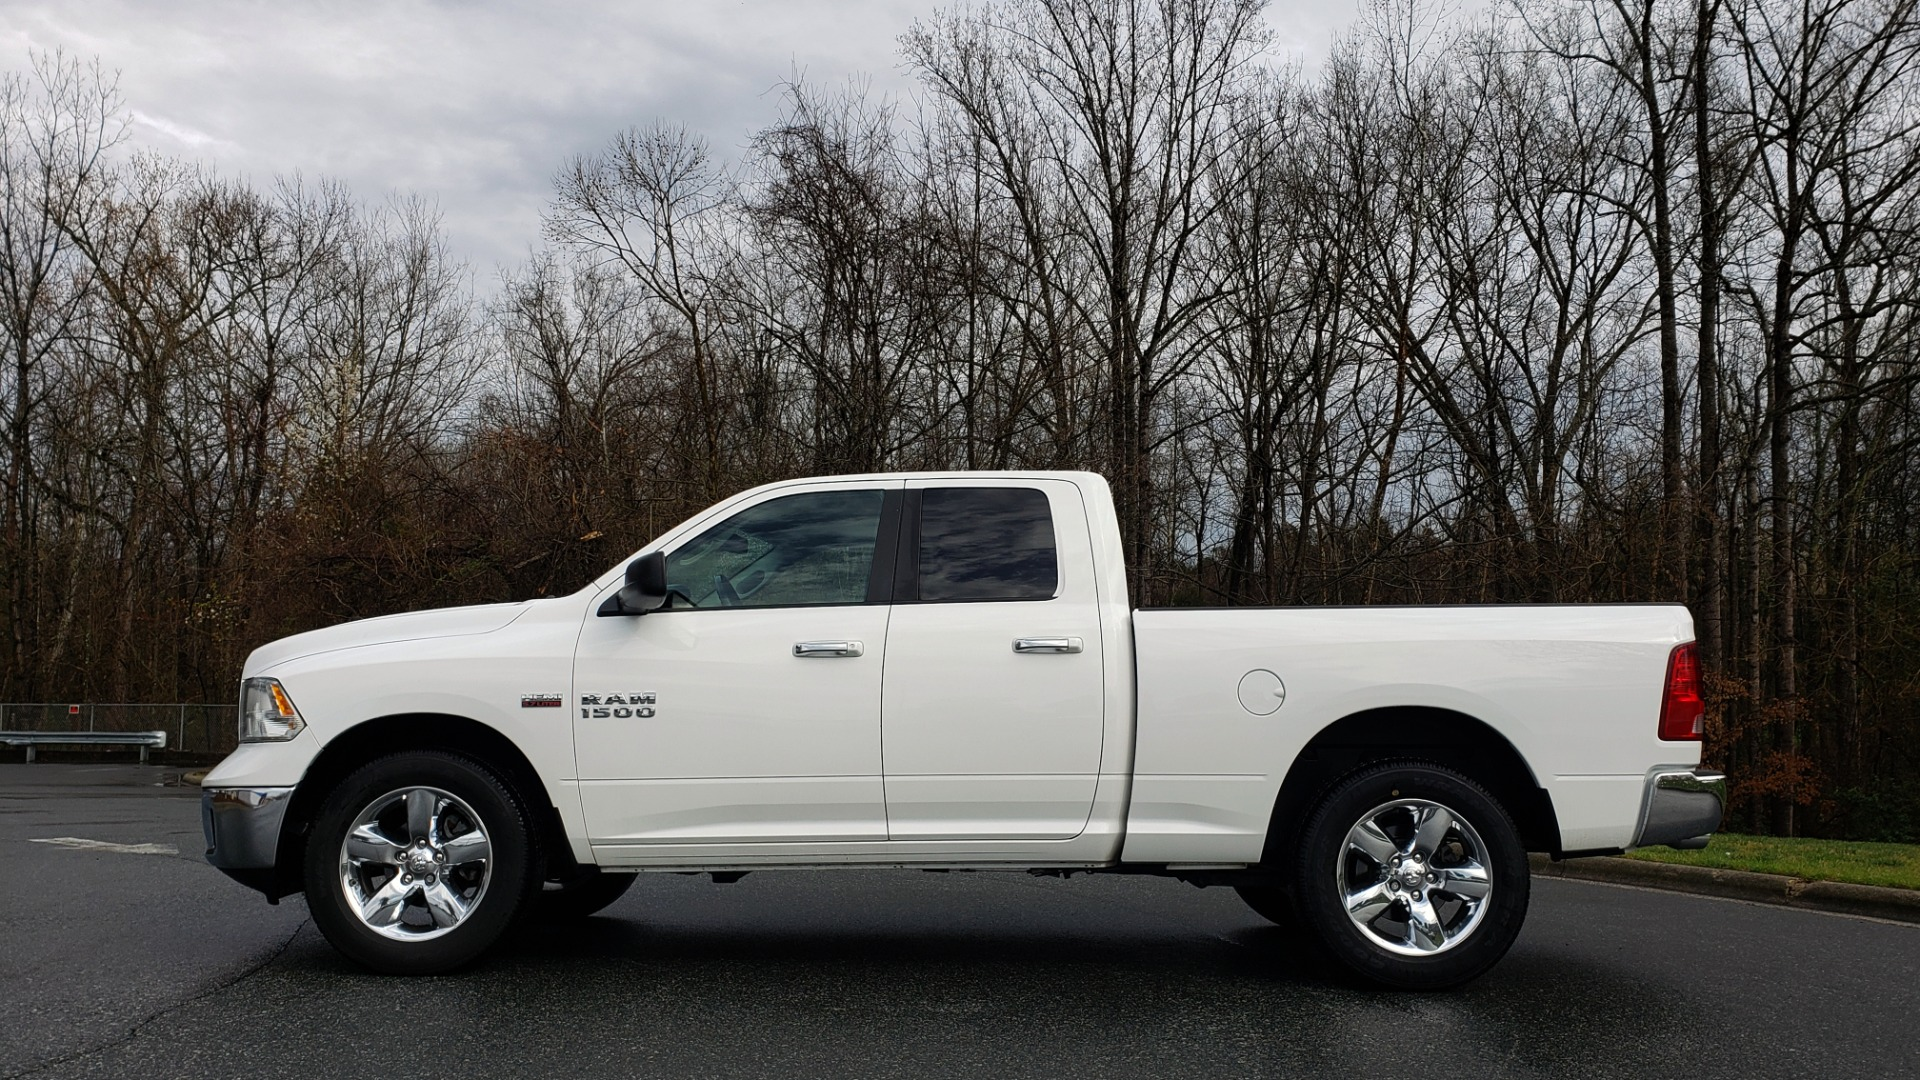 Used 2016 Ram 1500 BIG HORN QUAD CAB 4X4 / 5.7L HEMI V8 / 8-SPD AUTO for sale Sold at Formula Imports in Charlotte NC 28227 2